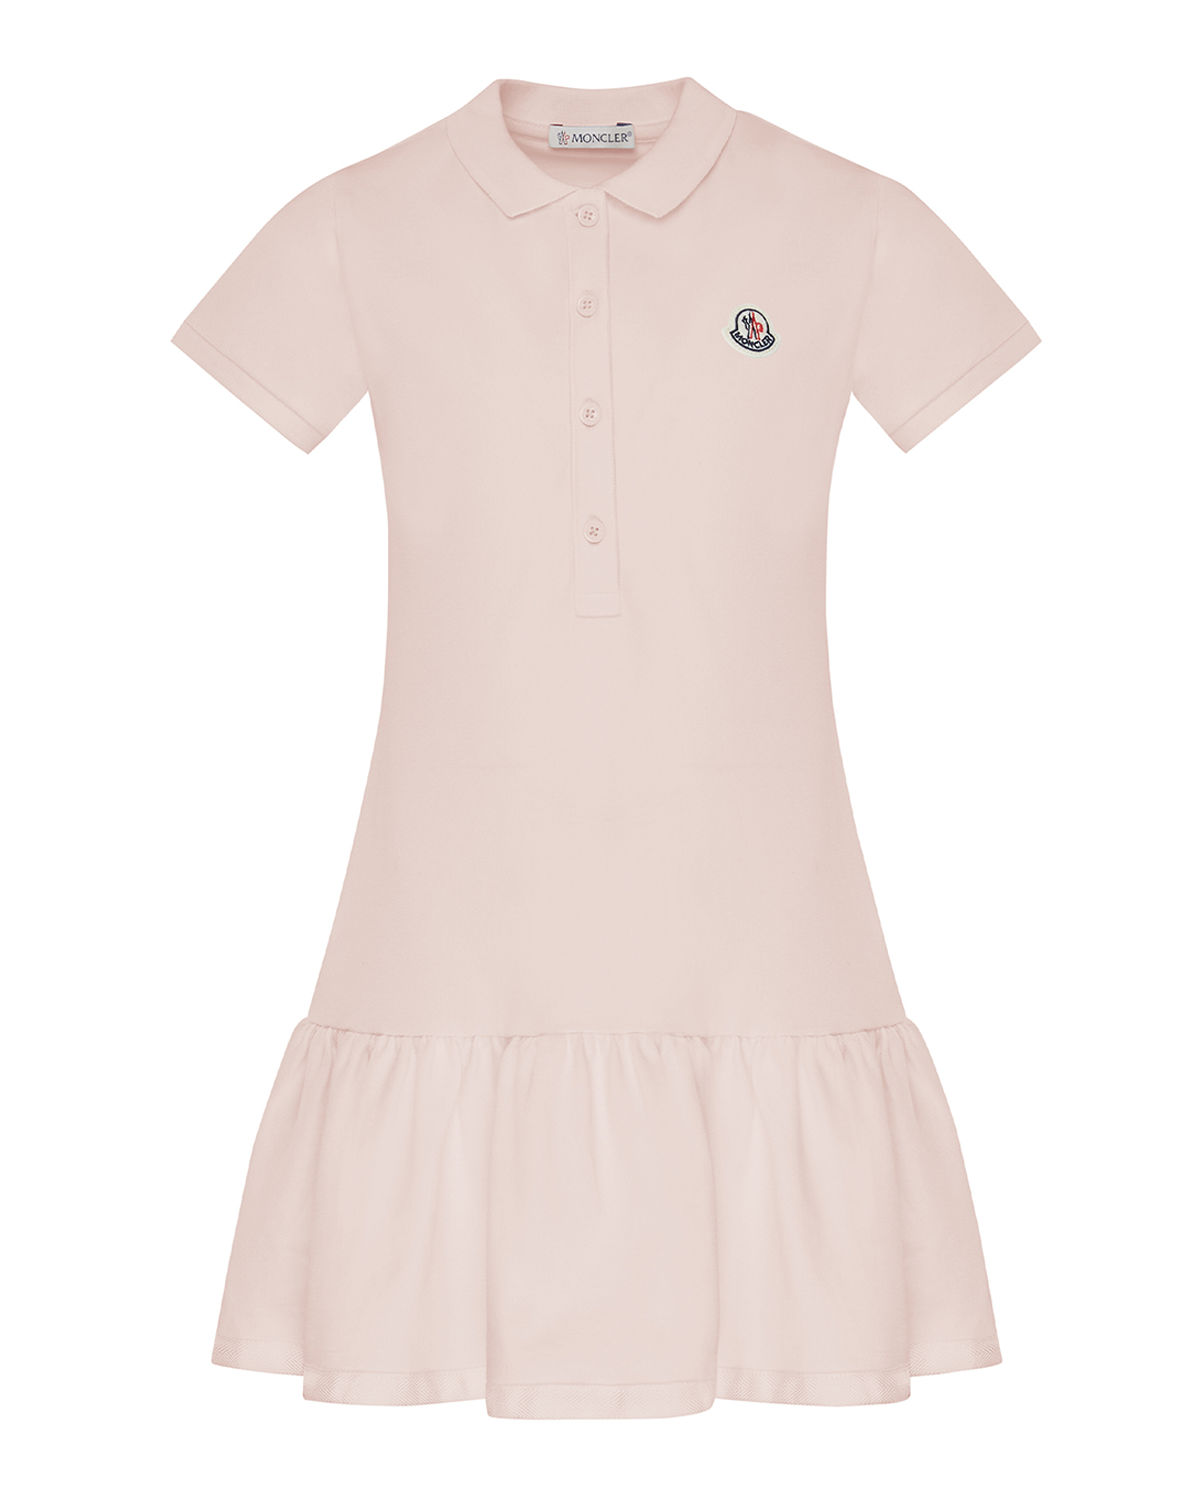 Moncler GIRL'S PIQUE DROP-WAIST POLO DRESS